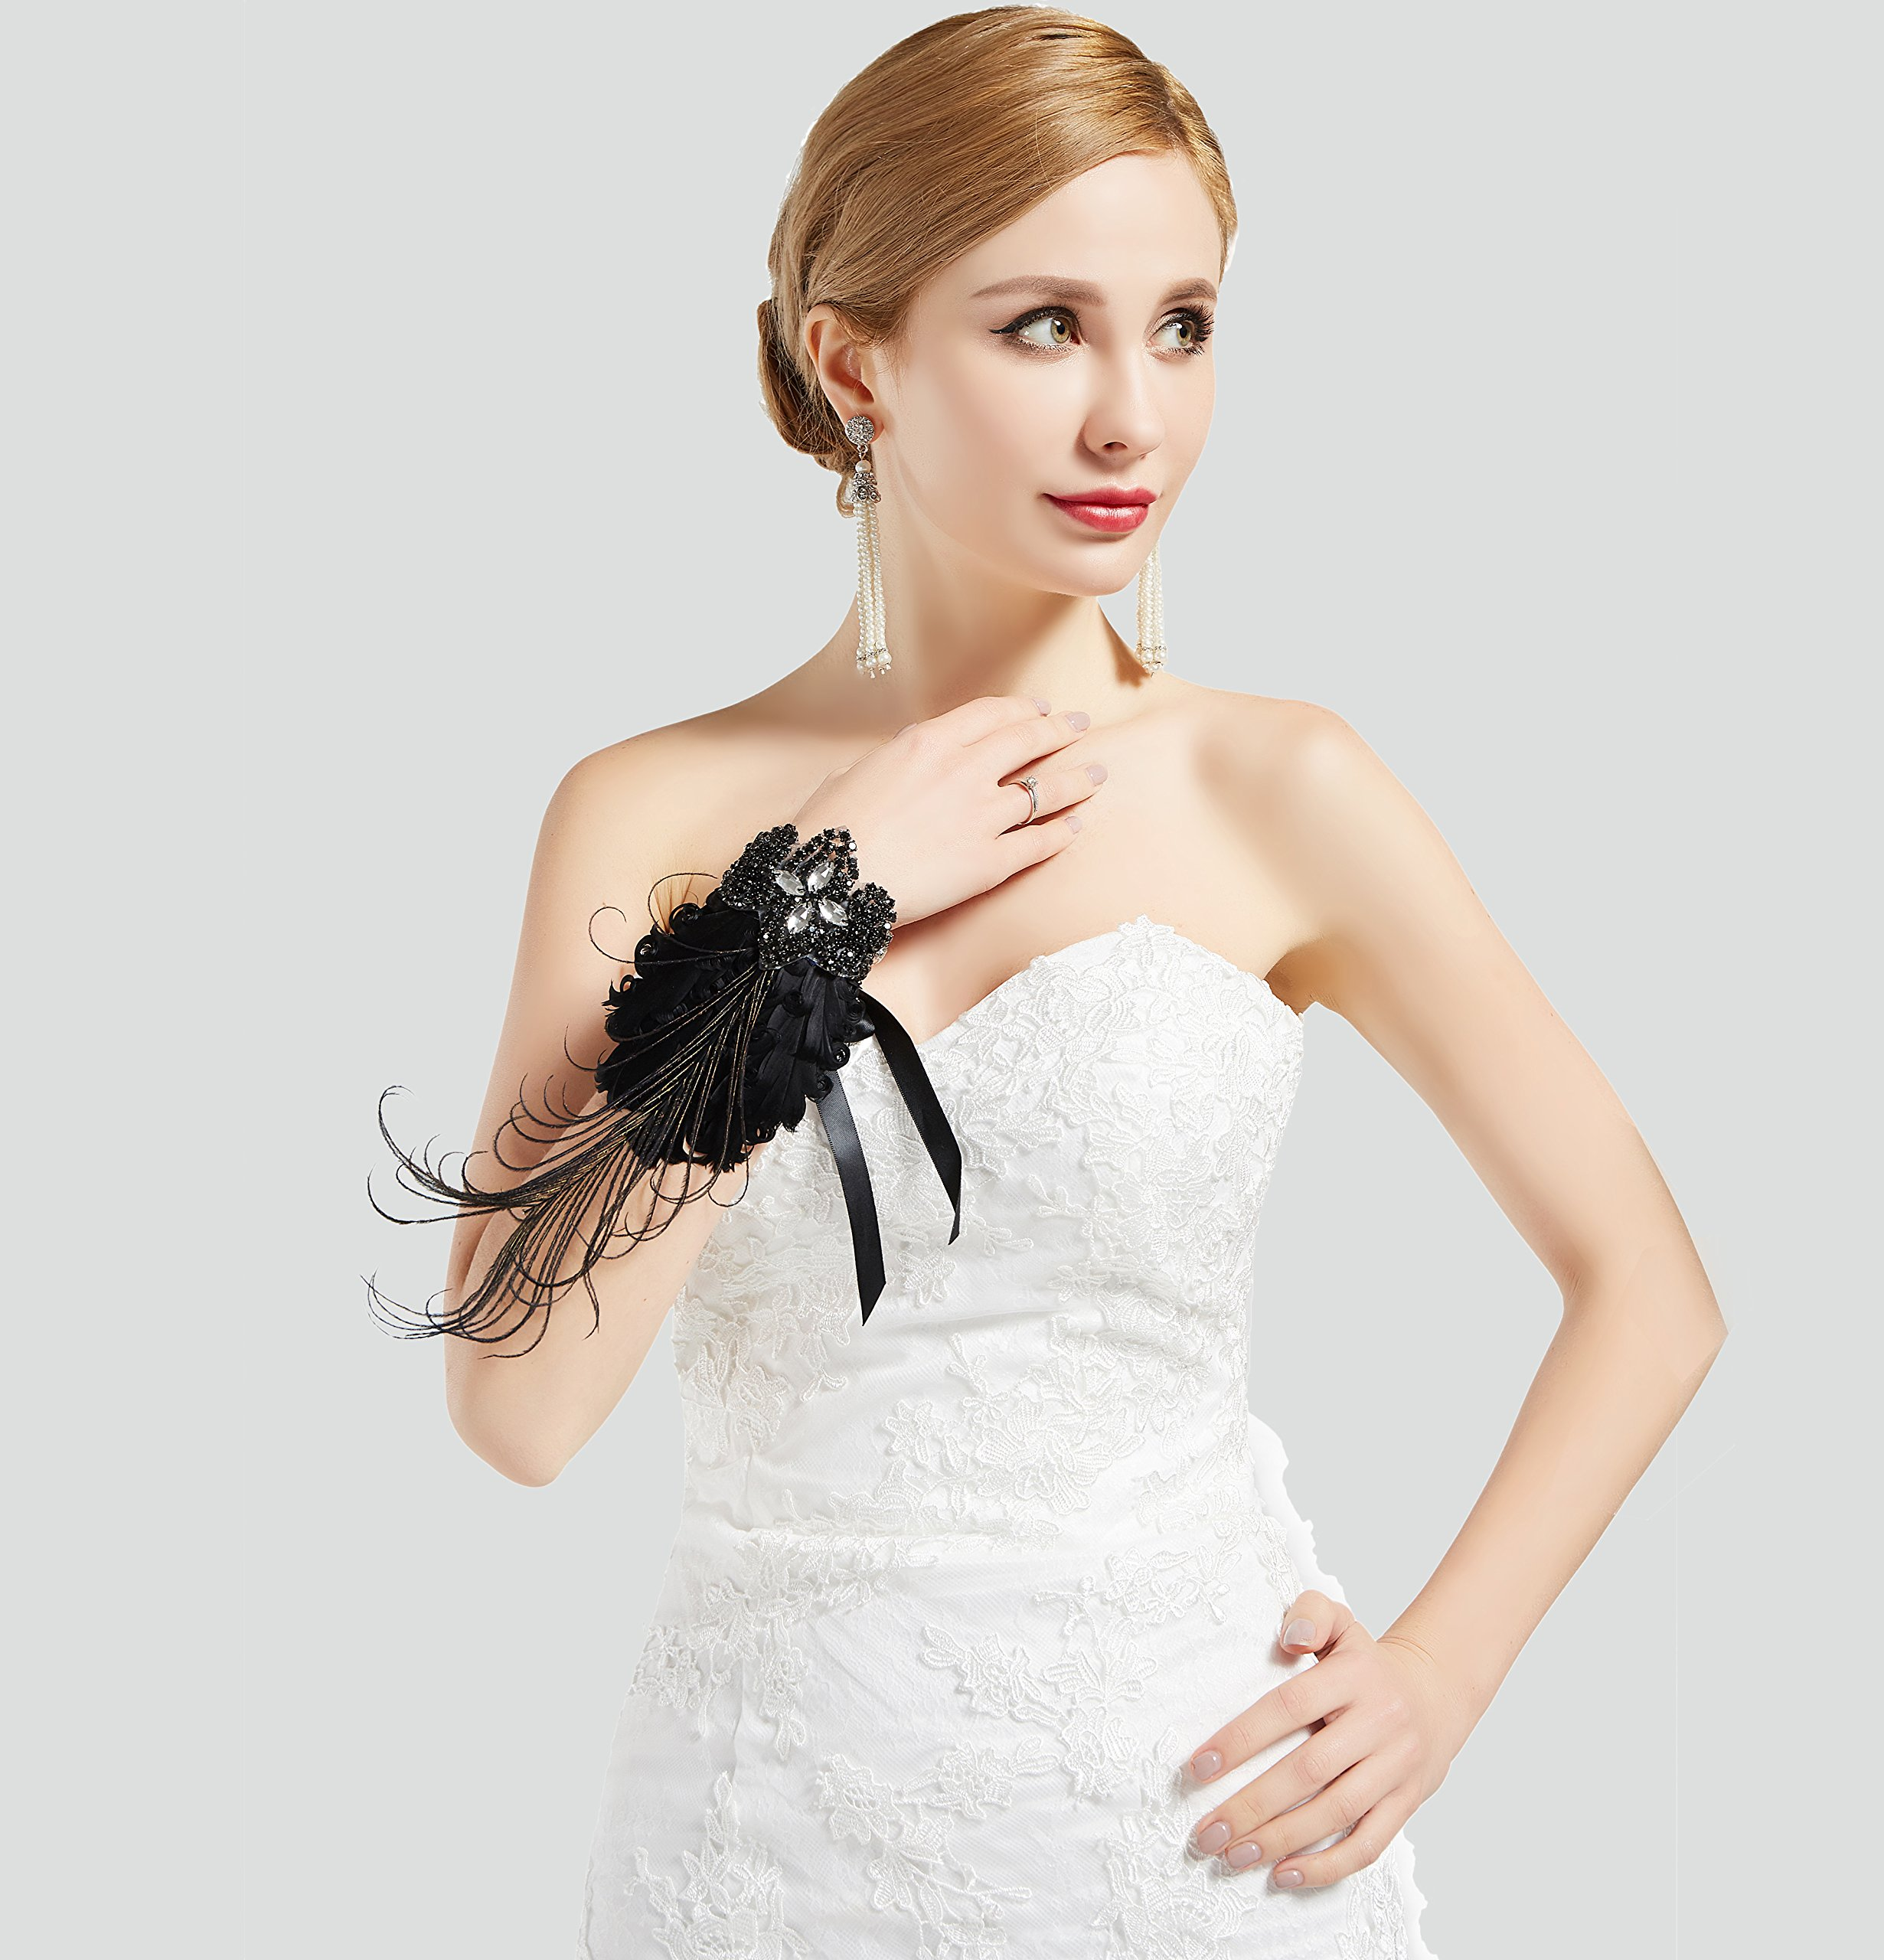 BABEYOND 1920s Wedding Wrist Corsage Gatsby Peacock Feather Bridal Wristband Corsage Roaring 20s Flapper Wedding Costume Accessories (Black by BABEYOND (Image #6)